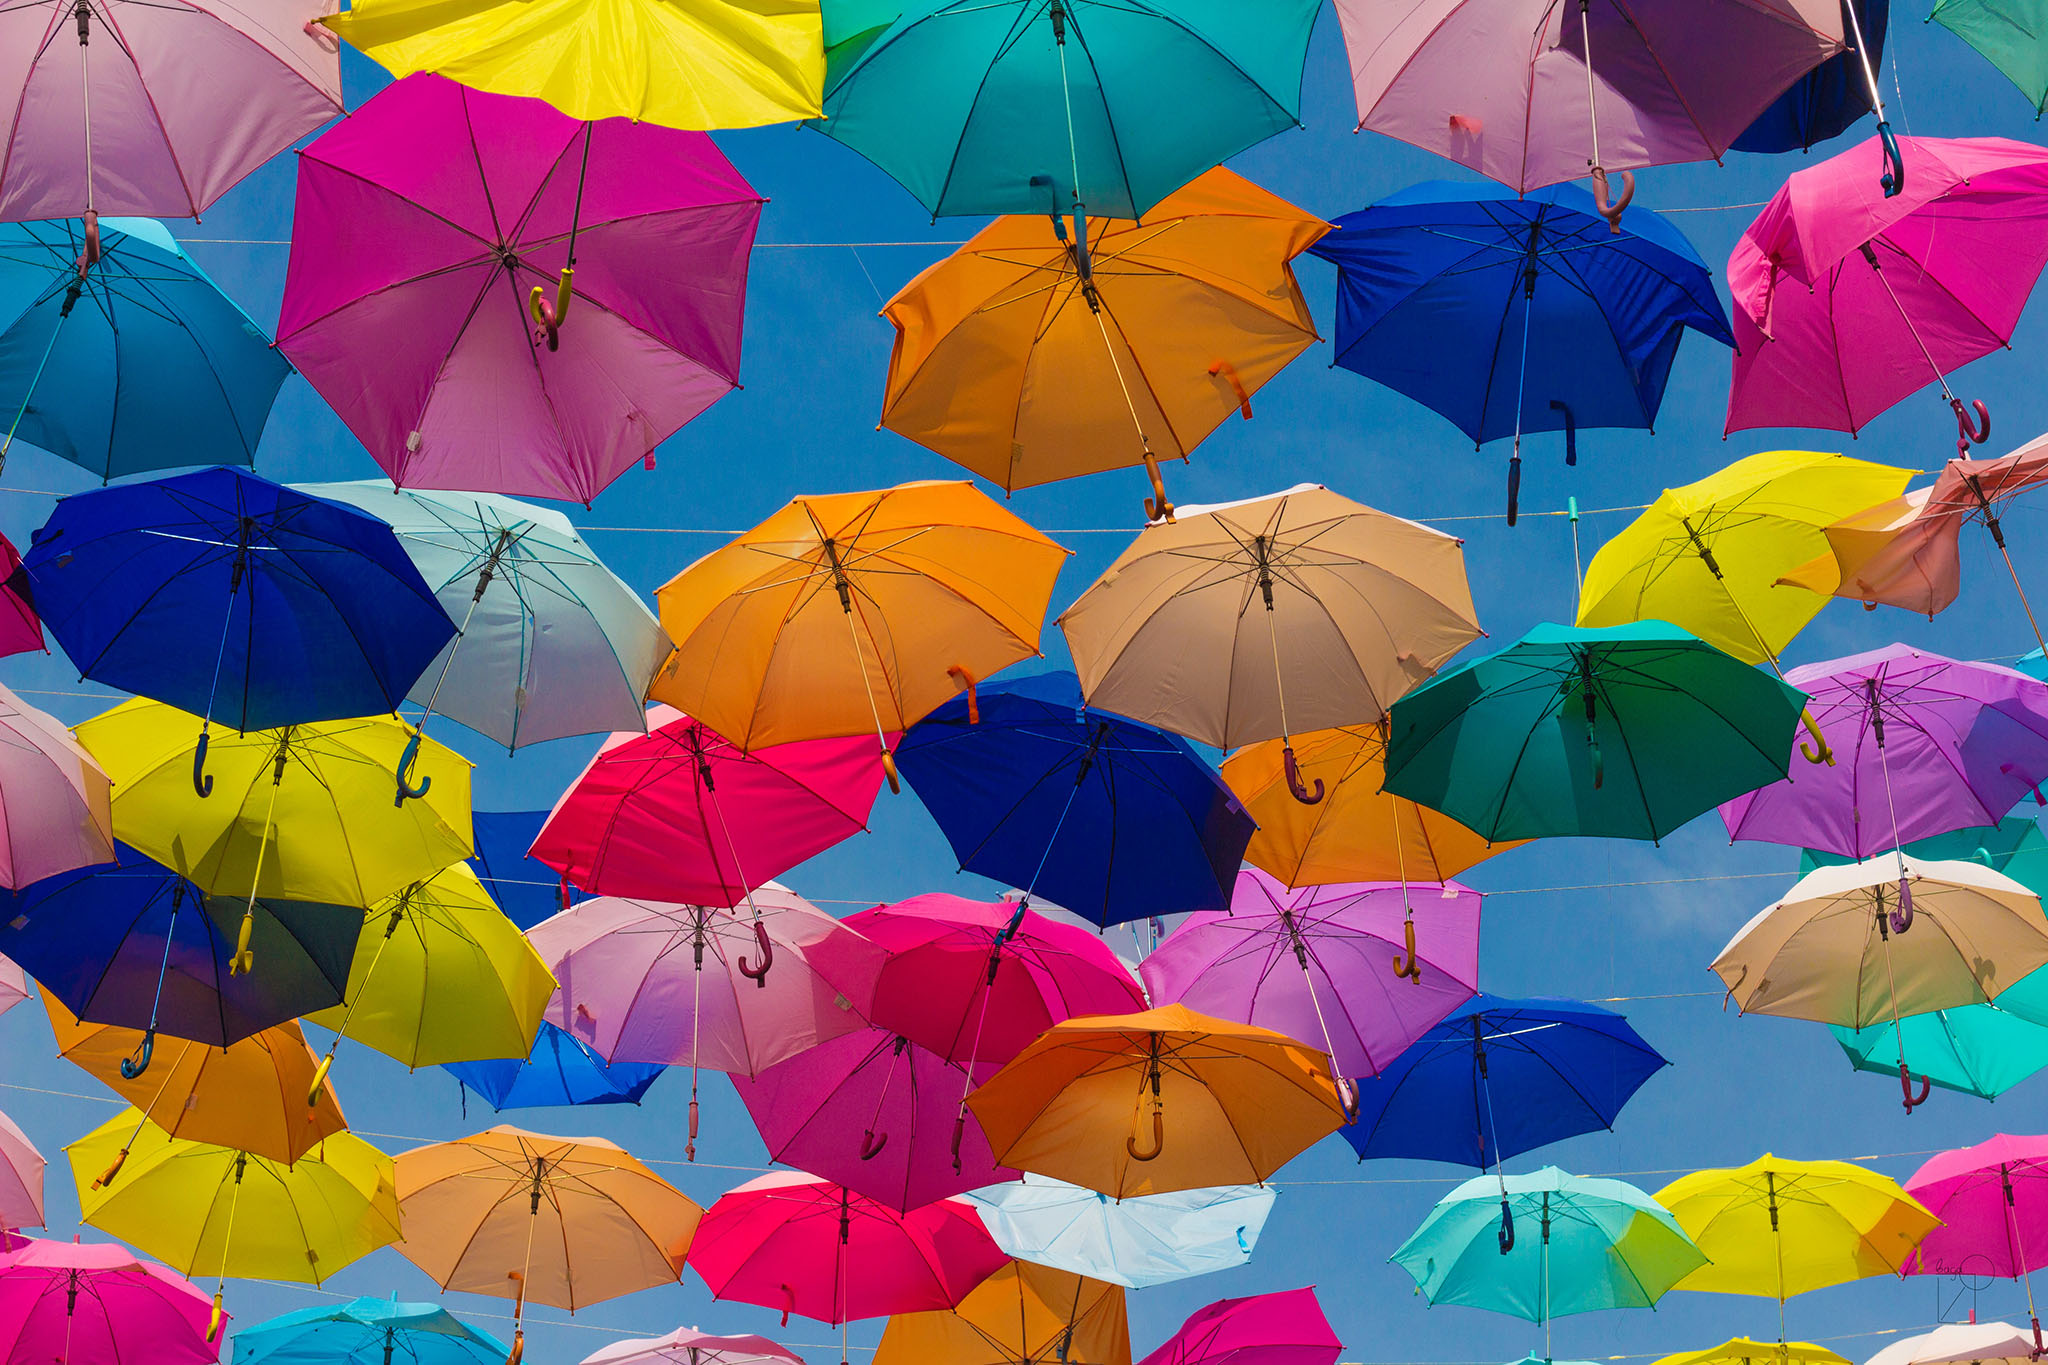 cover made of colorful umbrellas